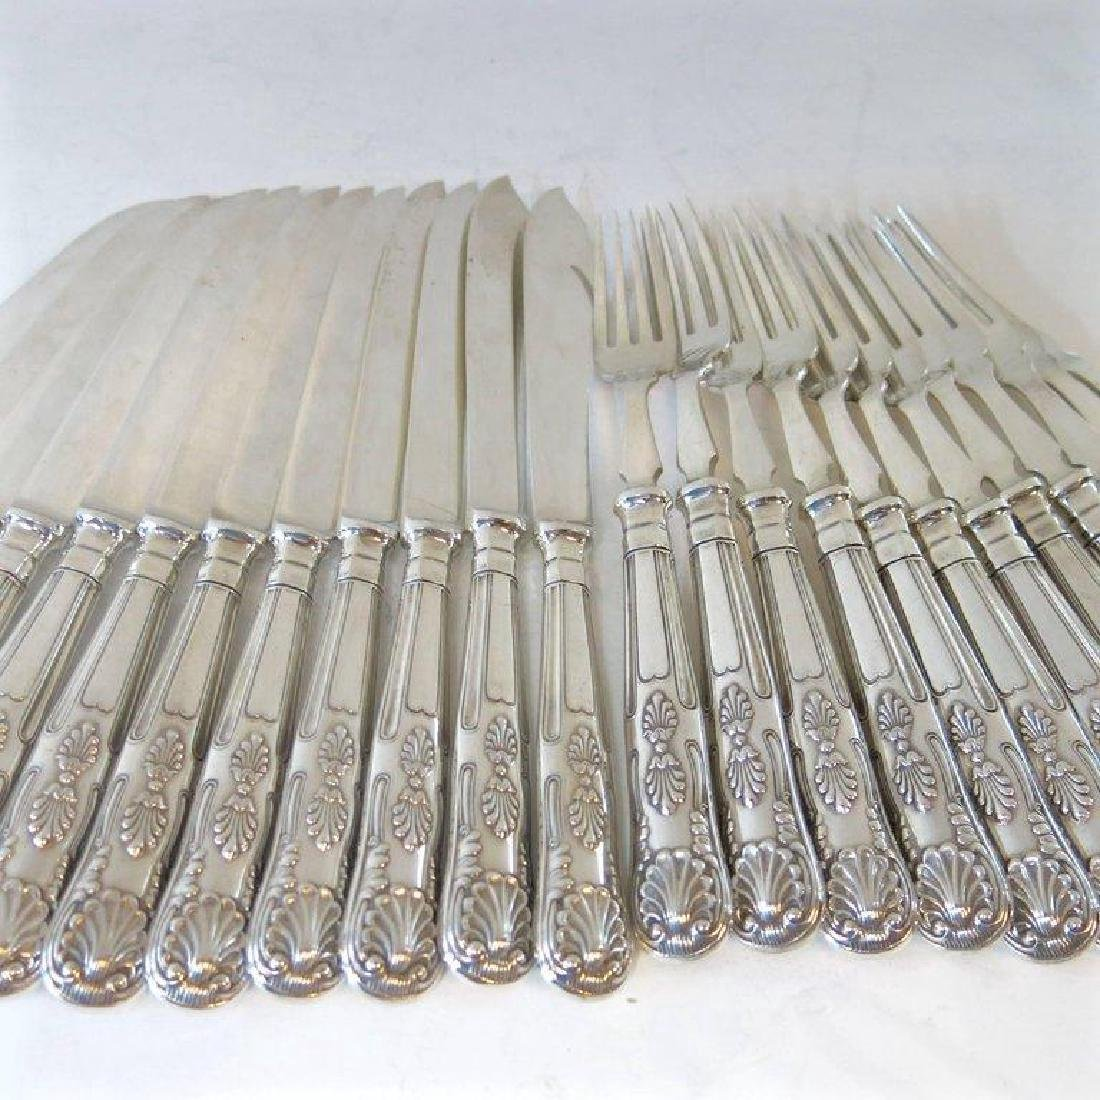 Antique Mappin & Webb Silver Fish Knives & Forks, 24pc